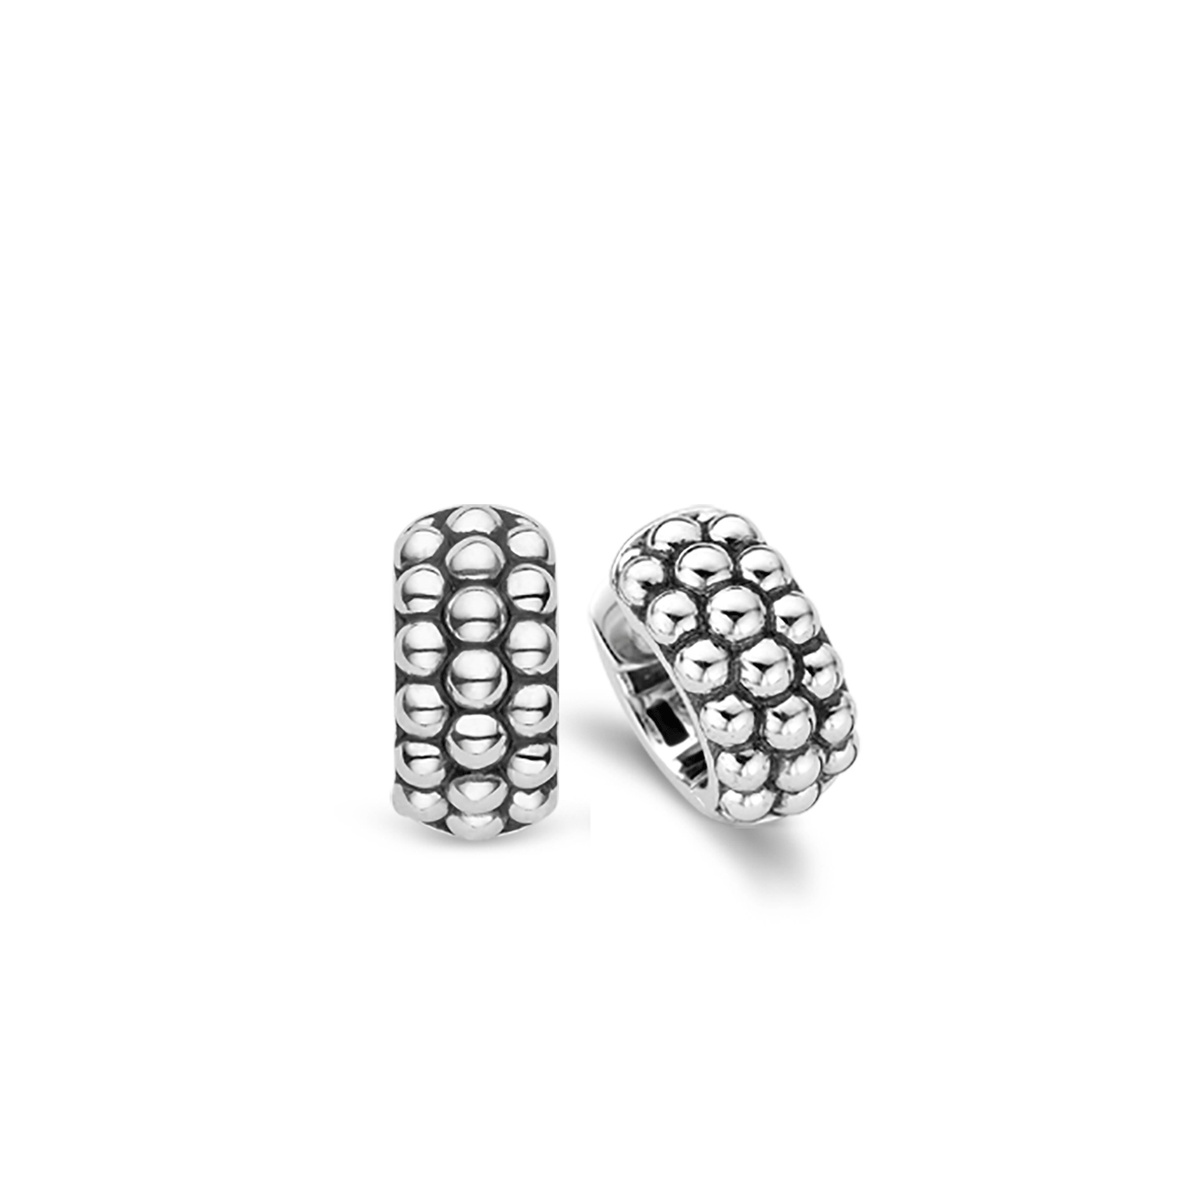 TI SENTO - Milano Earrings 7574SI